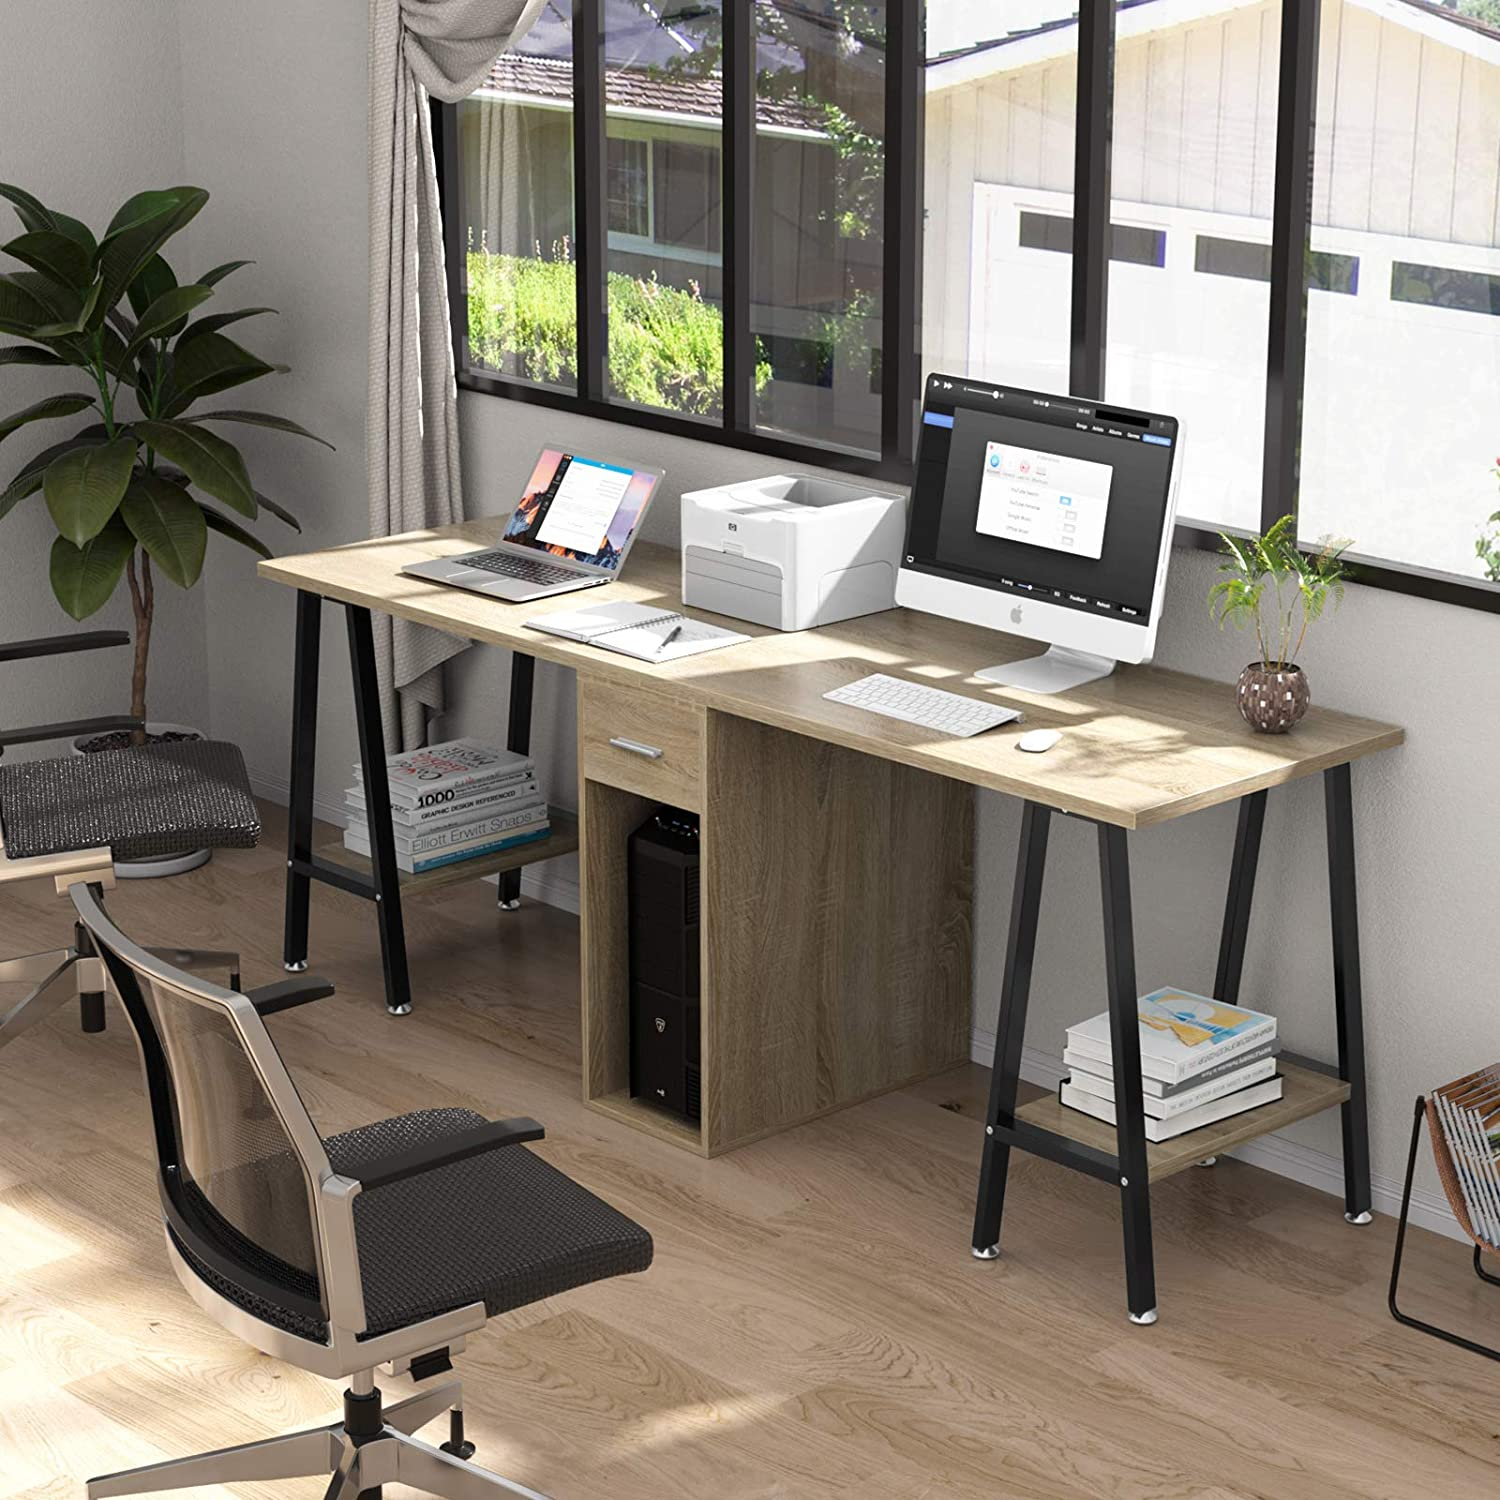 Dewel Two Person Computer Desk With Drawers 78 Extra Large Long Computer Desk Double Workstation Computer Desks With Storage Wood Big Dual Computer Desk Executive Office Desk Amazon Ca Home Kitchen